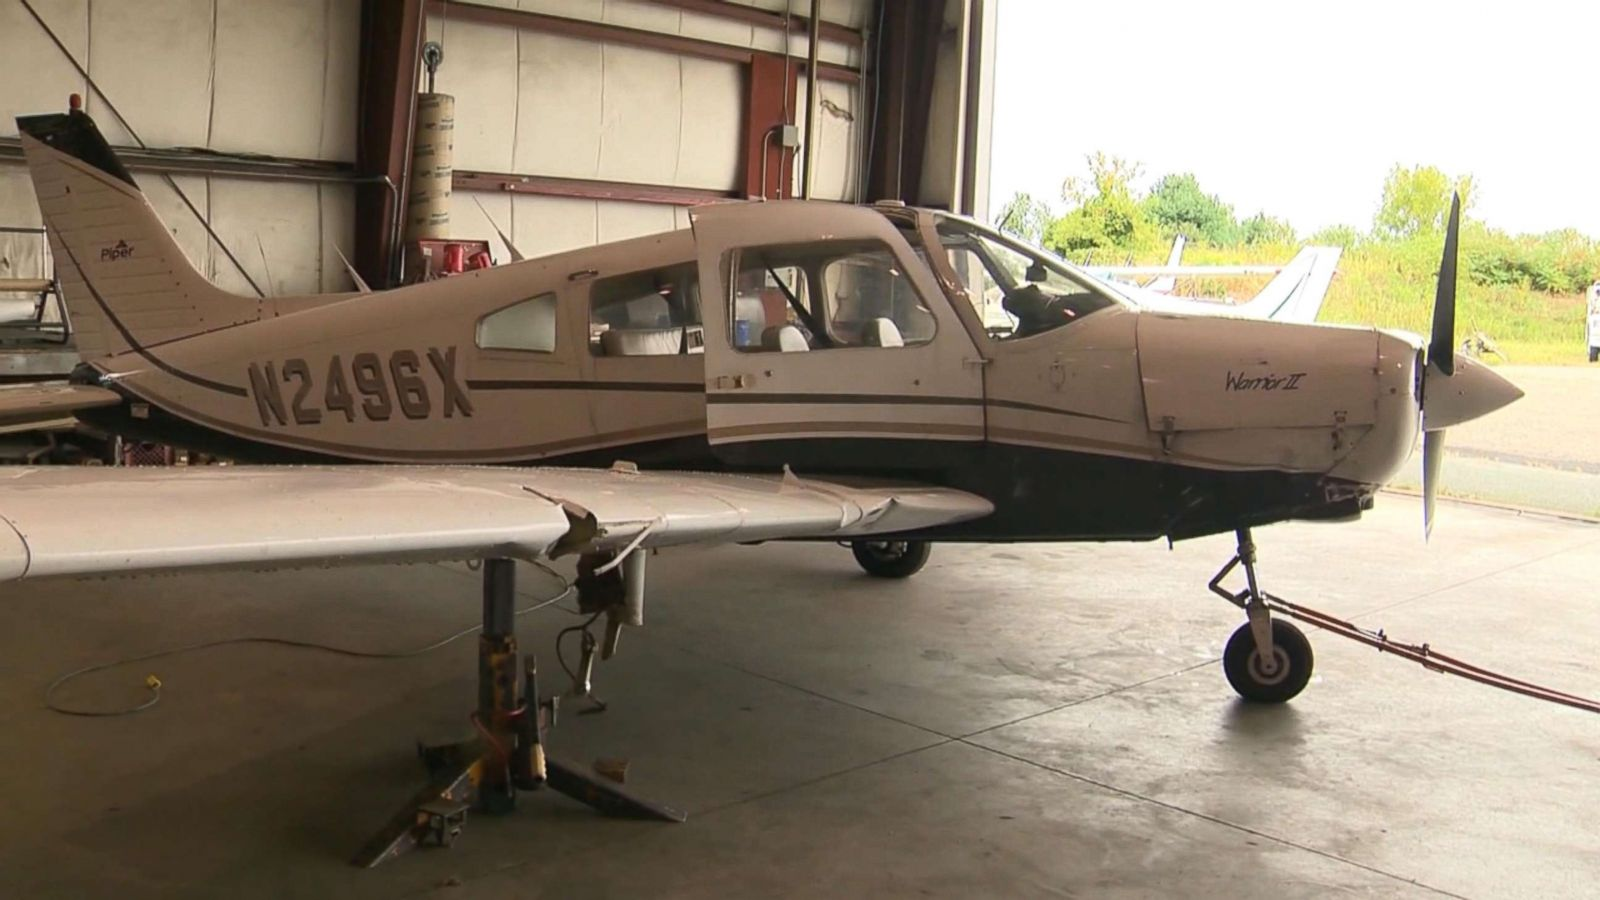 Teen pilot's mom describes 'nerve-wracking' minutes watching